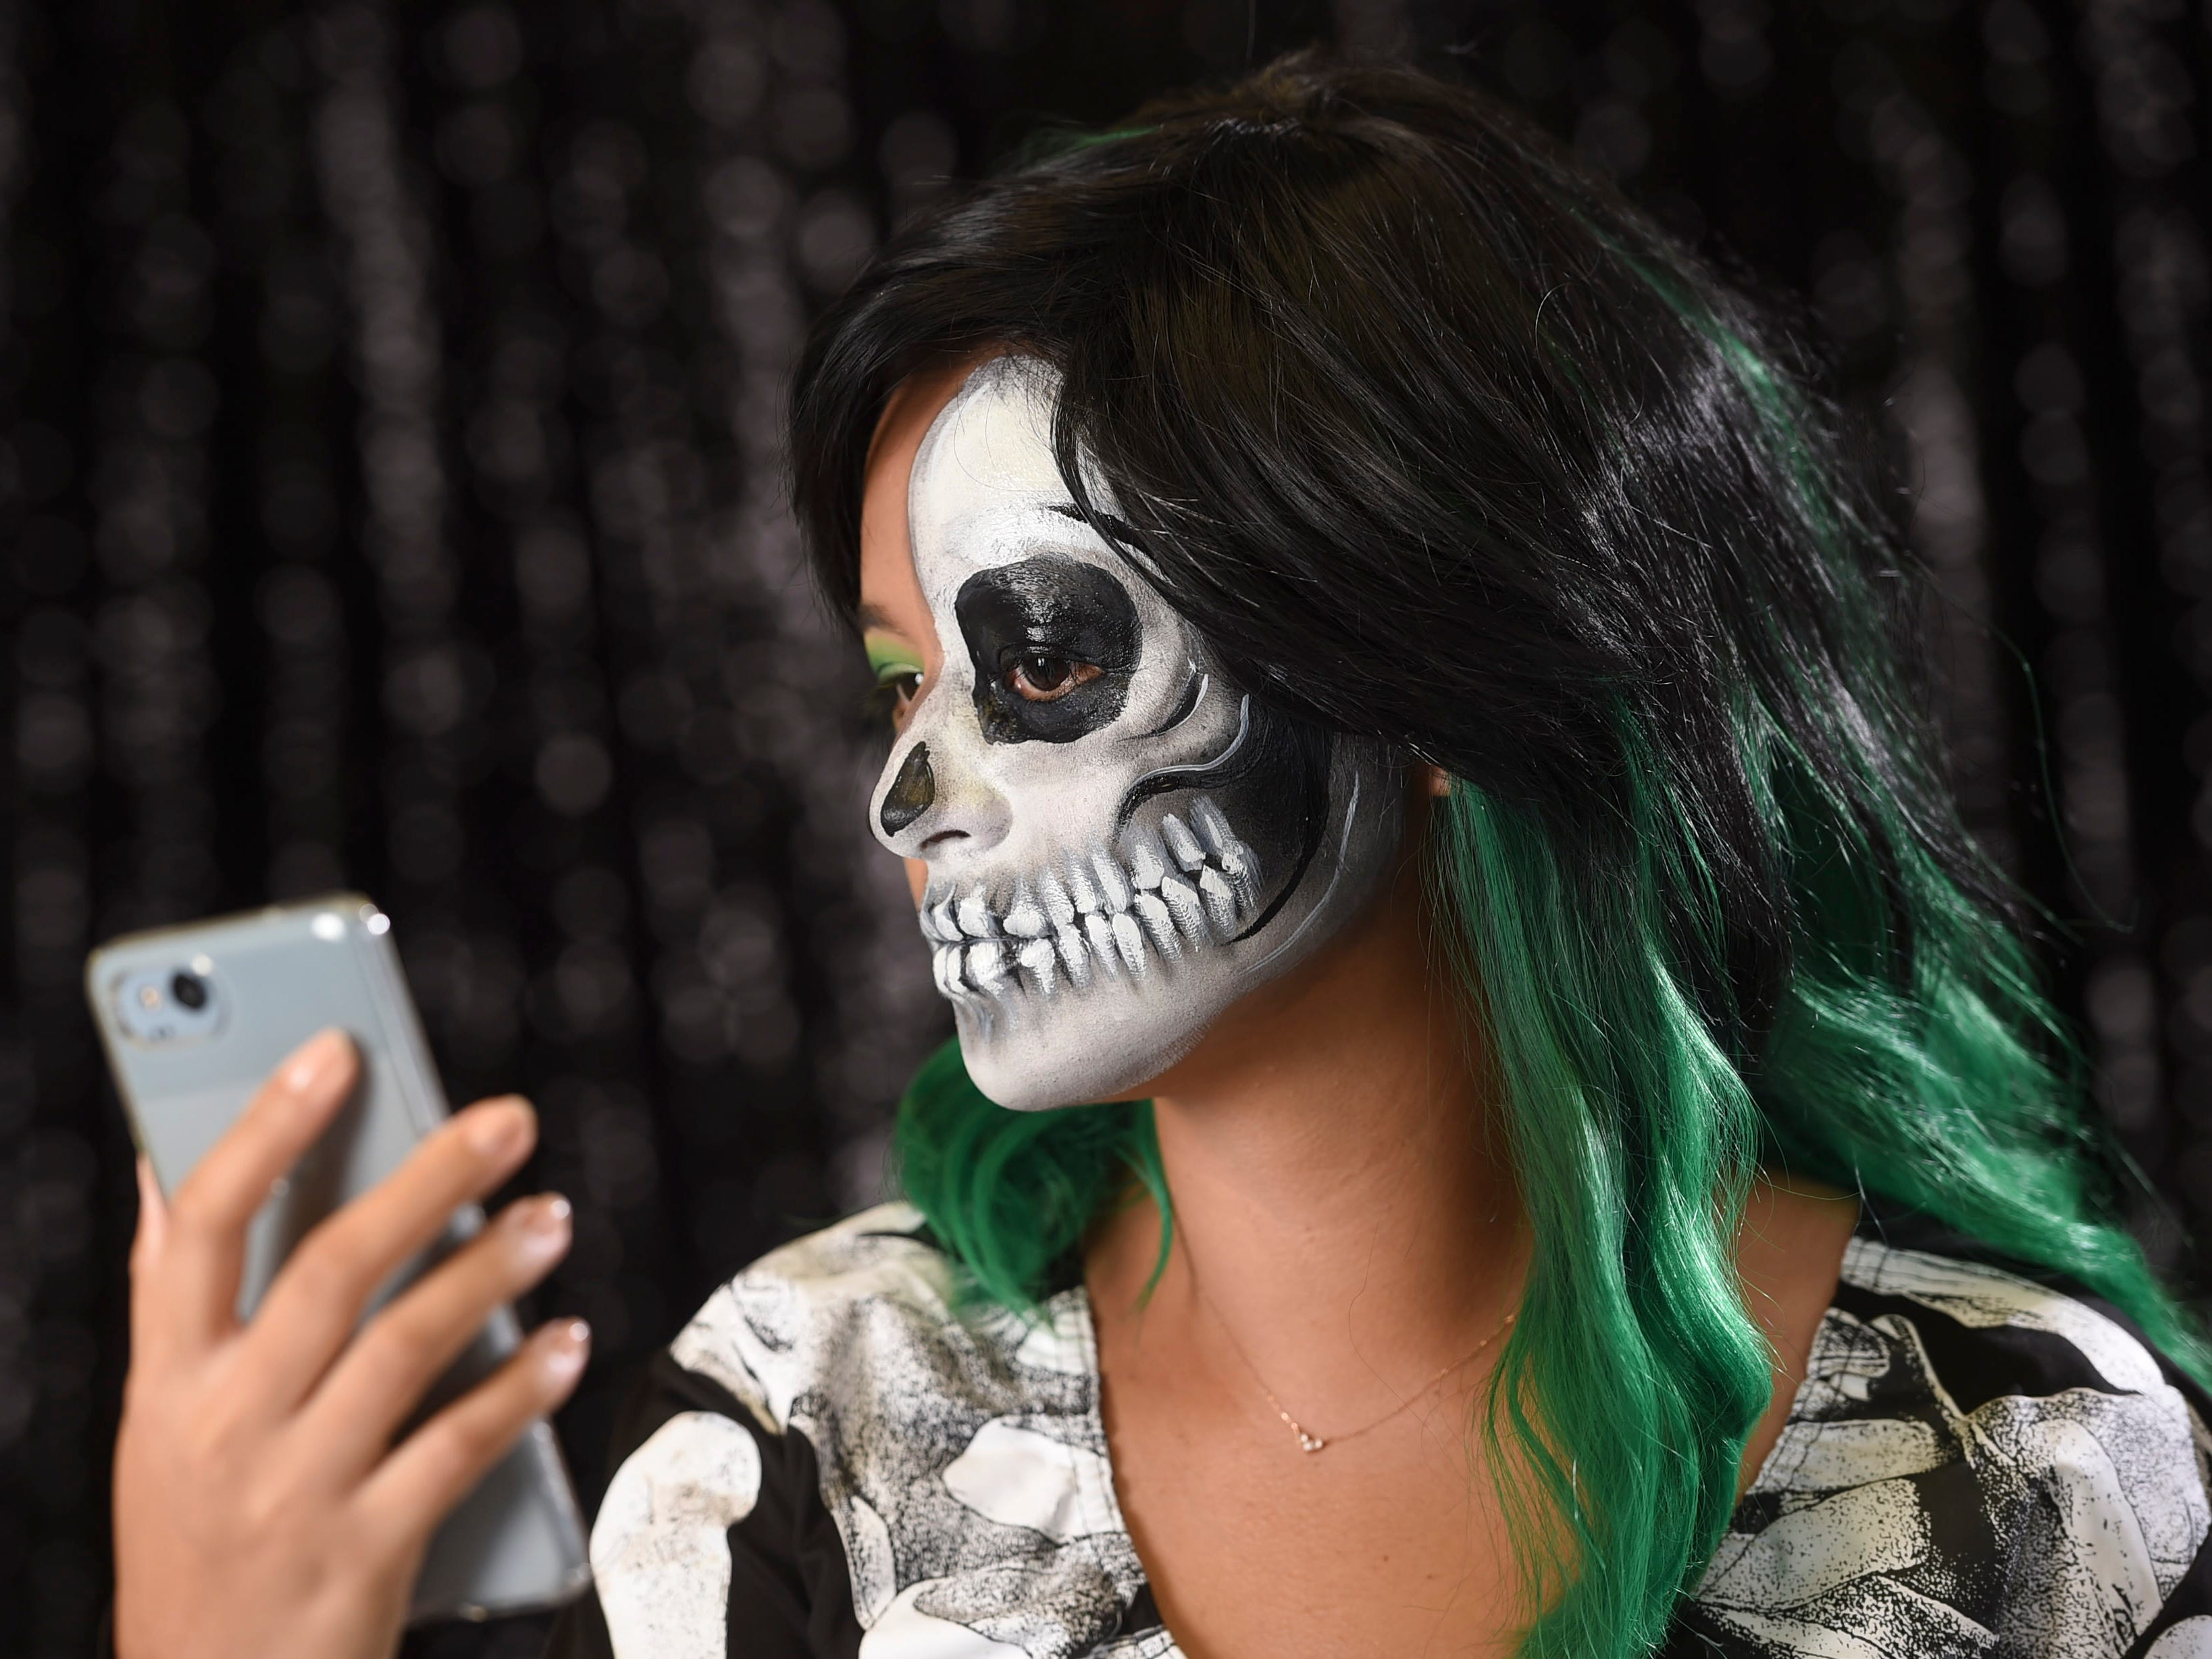 Pacific Daily News reporter Chloe Babauta checks out her half skull makeup, Oct. 9, 2018.